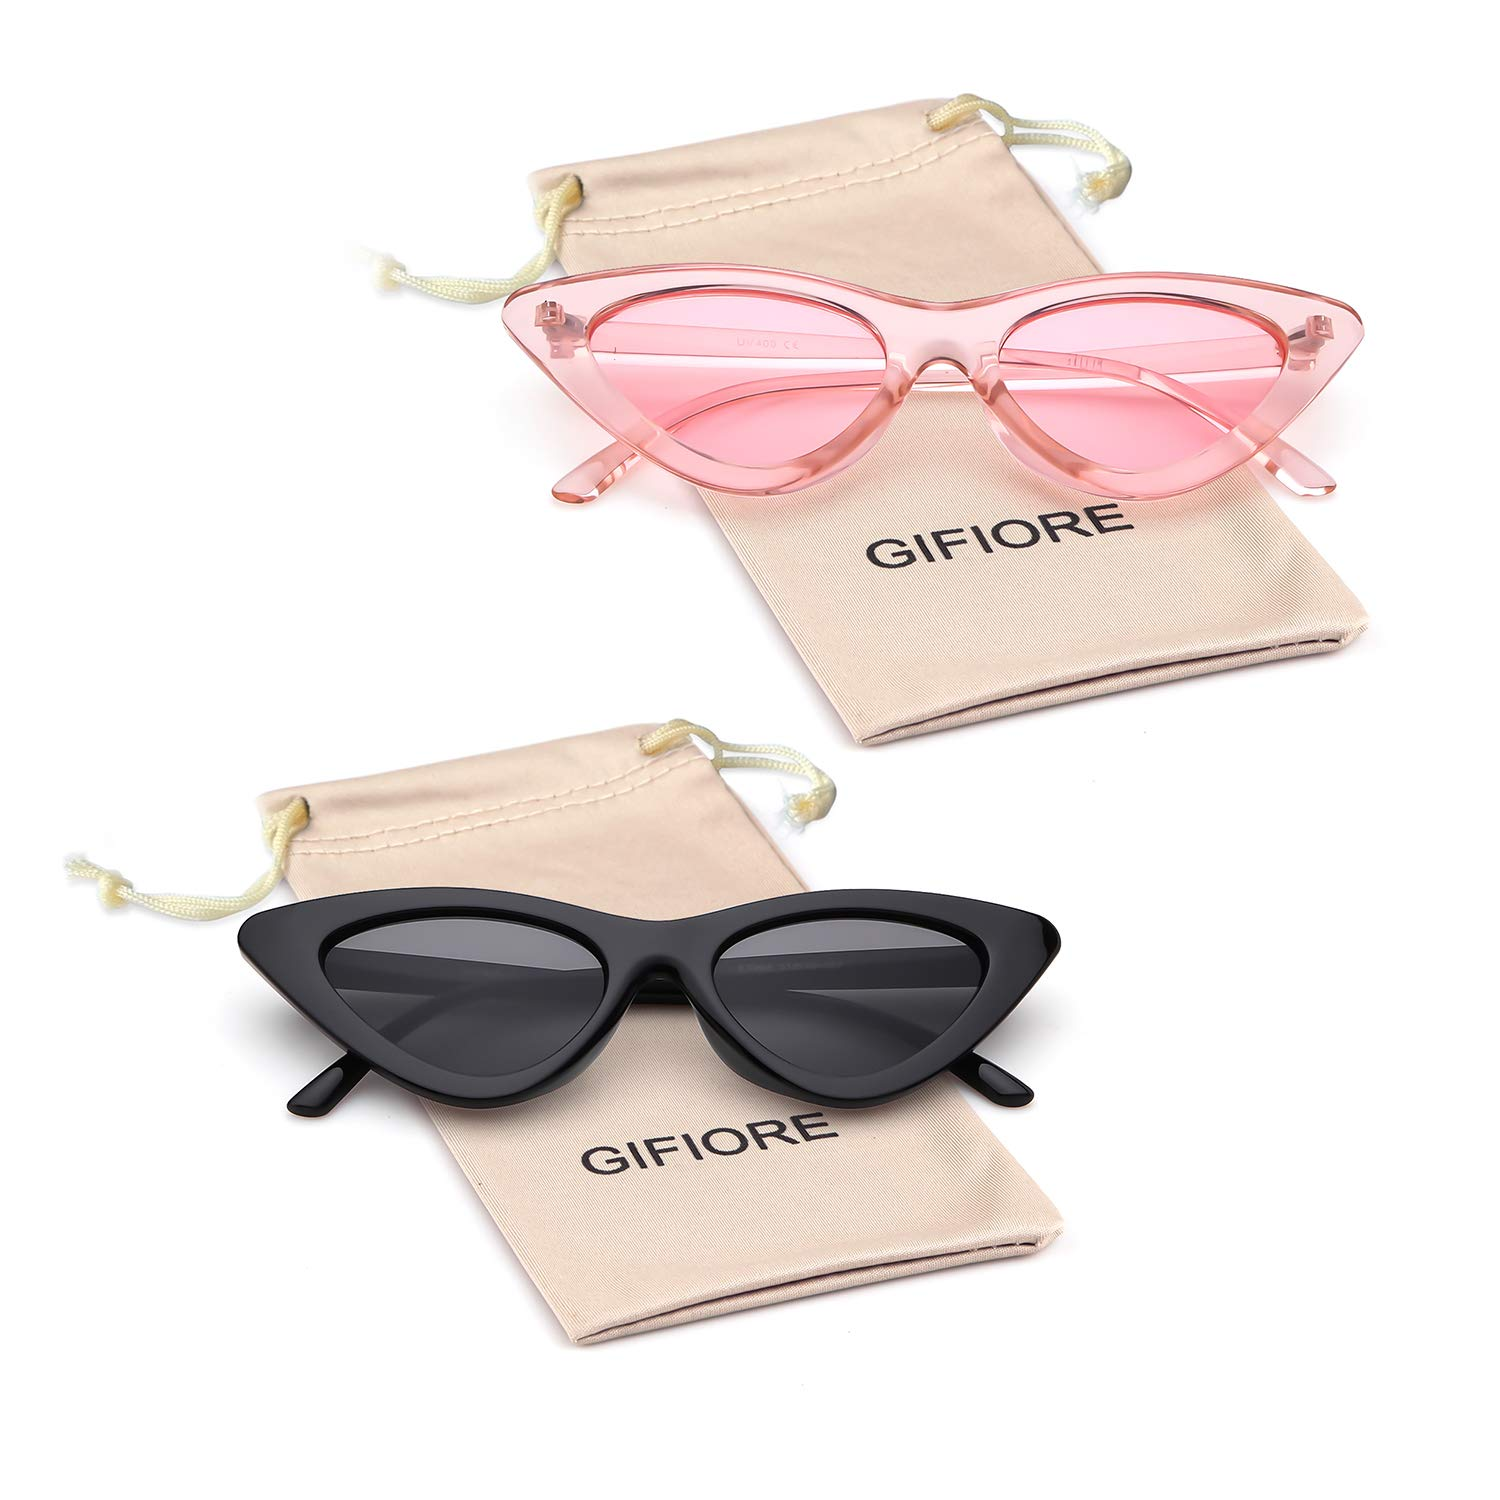 003afcb44d4b Amazon.com: Gifiore Retro Vintage Cat Eye Sunglasses for Women Clout  Goggles Plastic Frame Glasses (Black&Pink, 51): Clothing